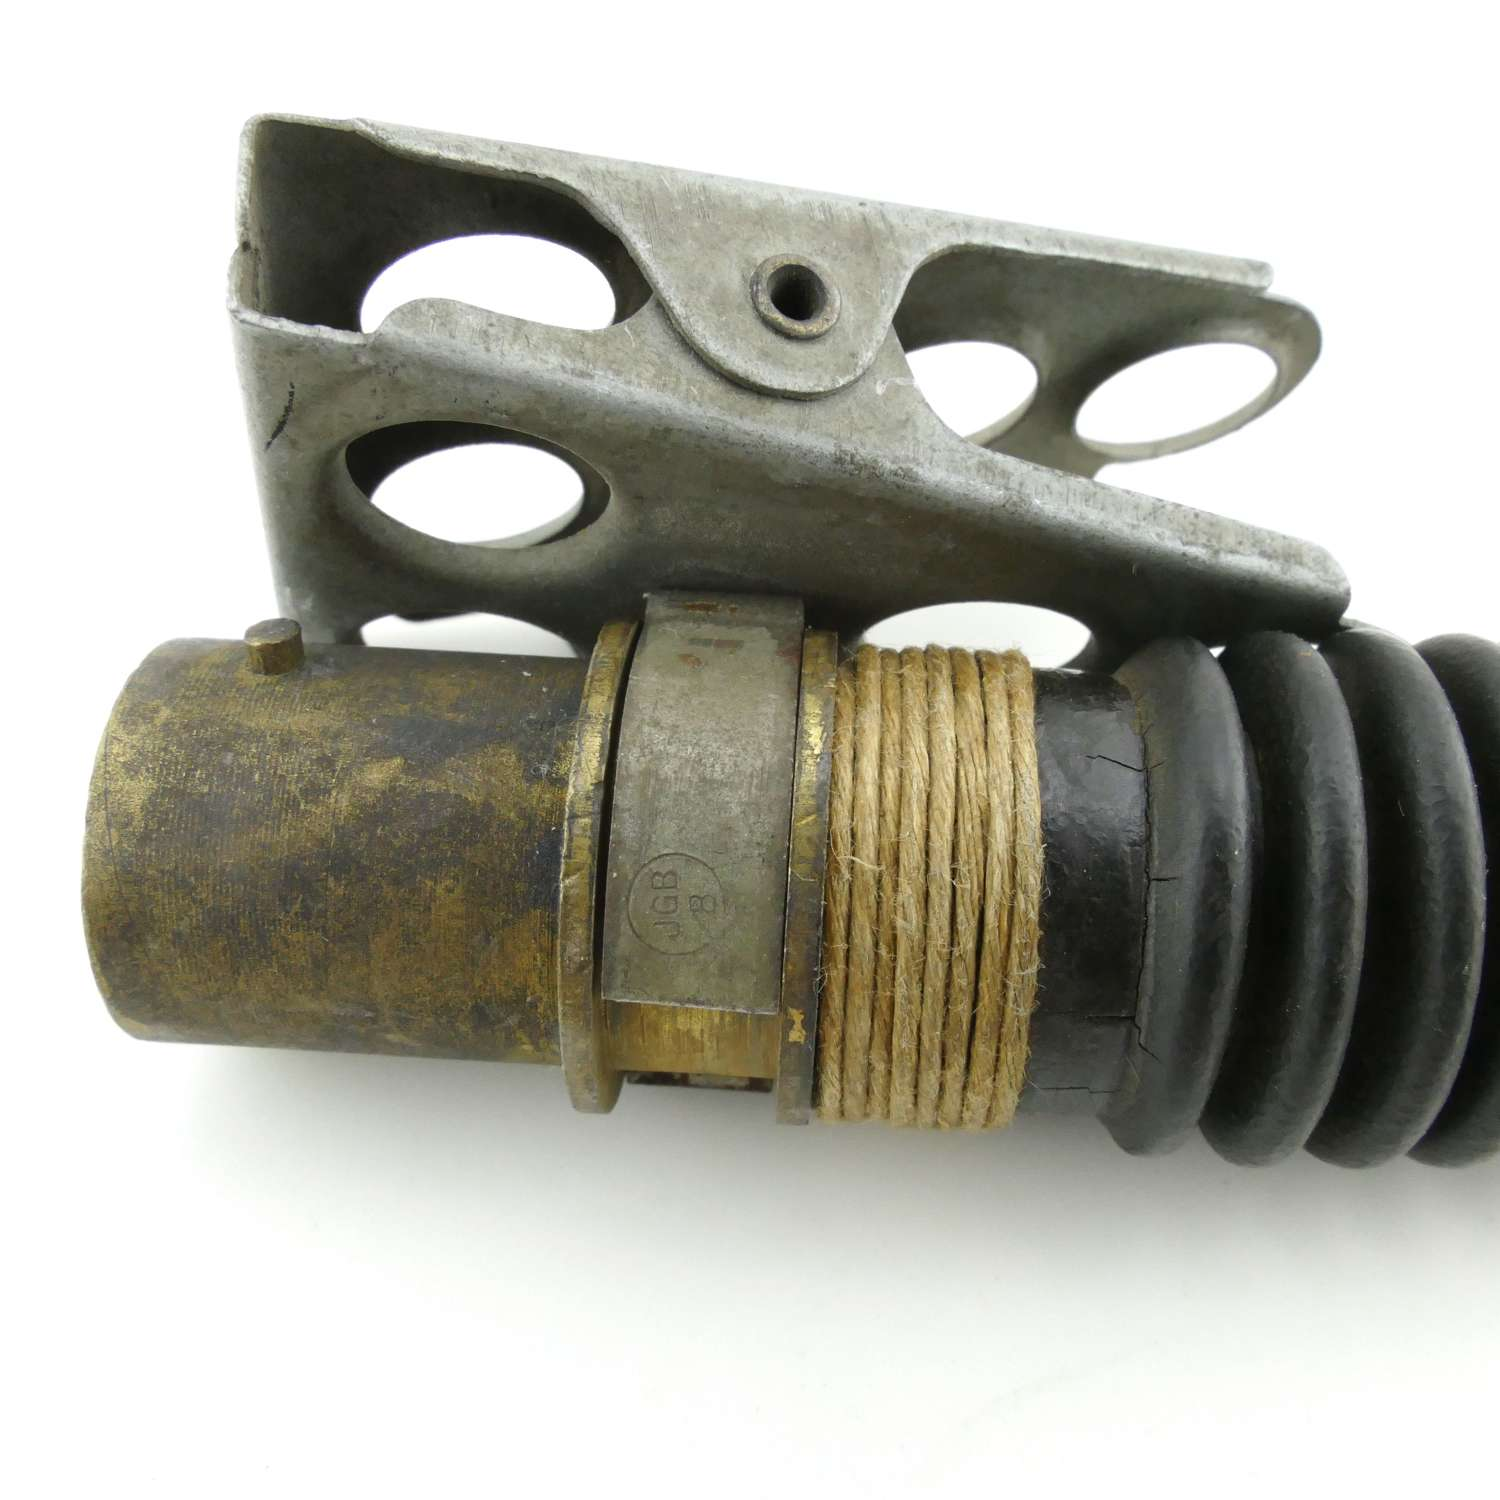 RAF oxygen mask tube /connectors, early